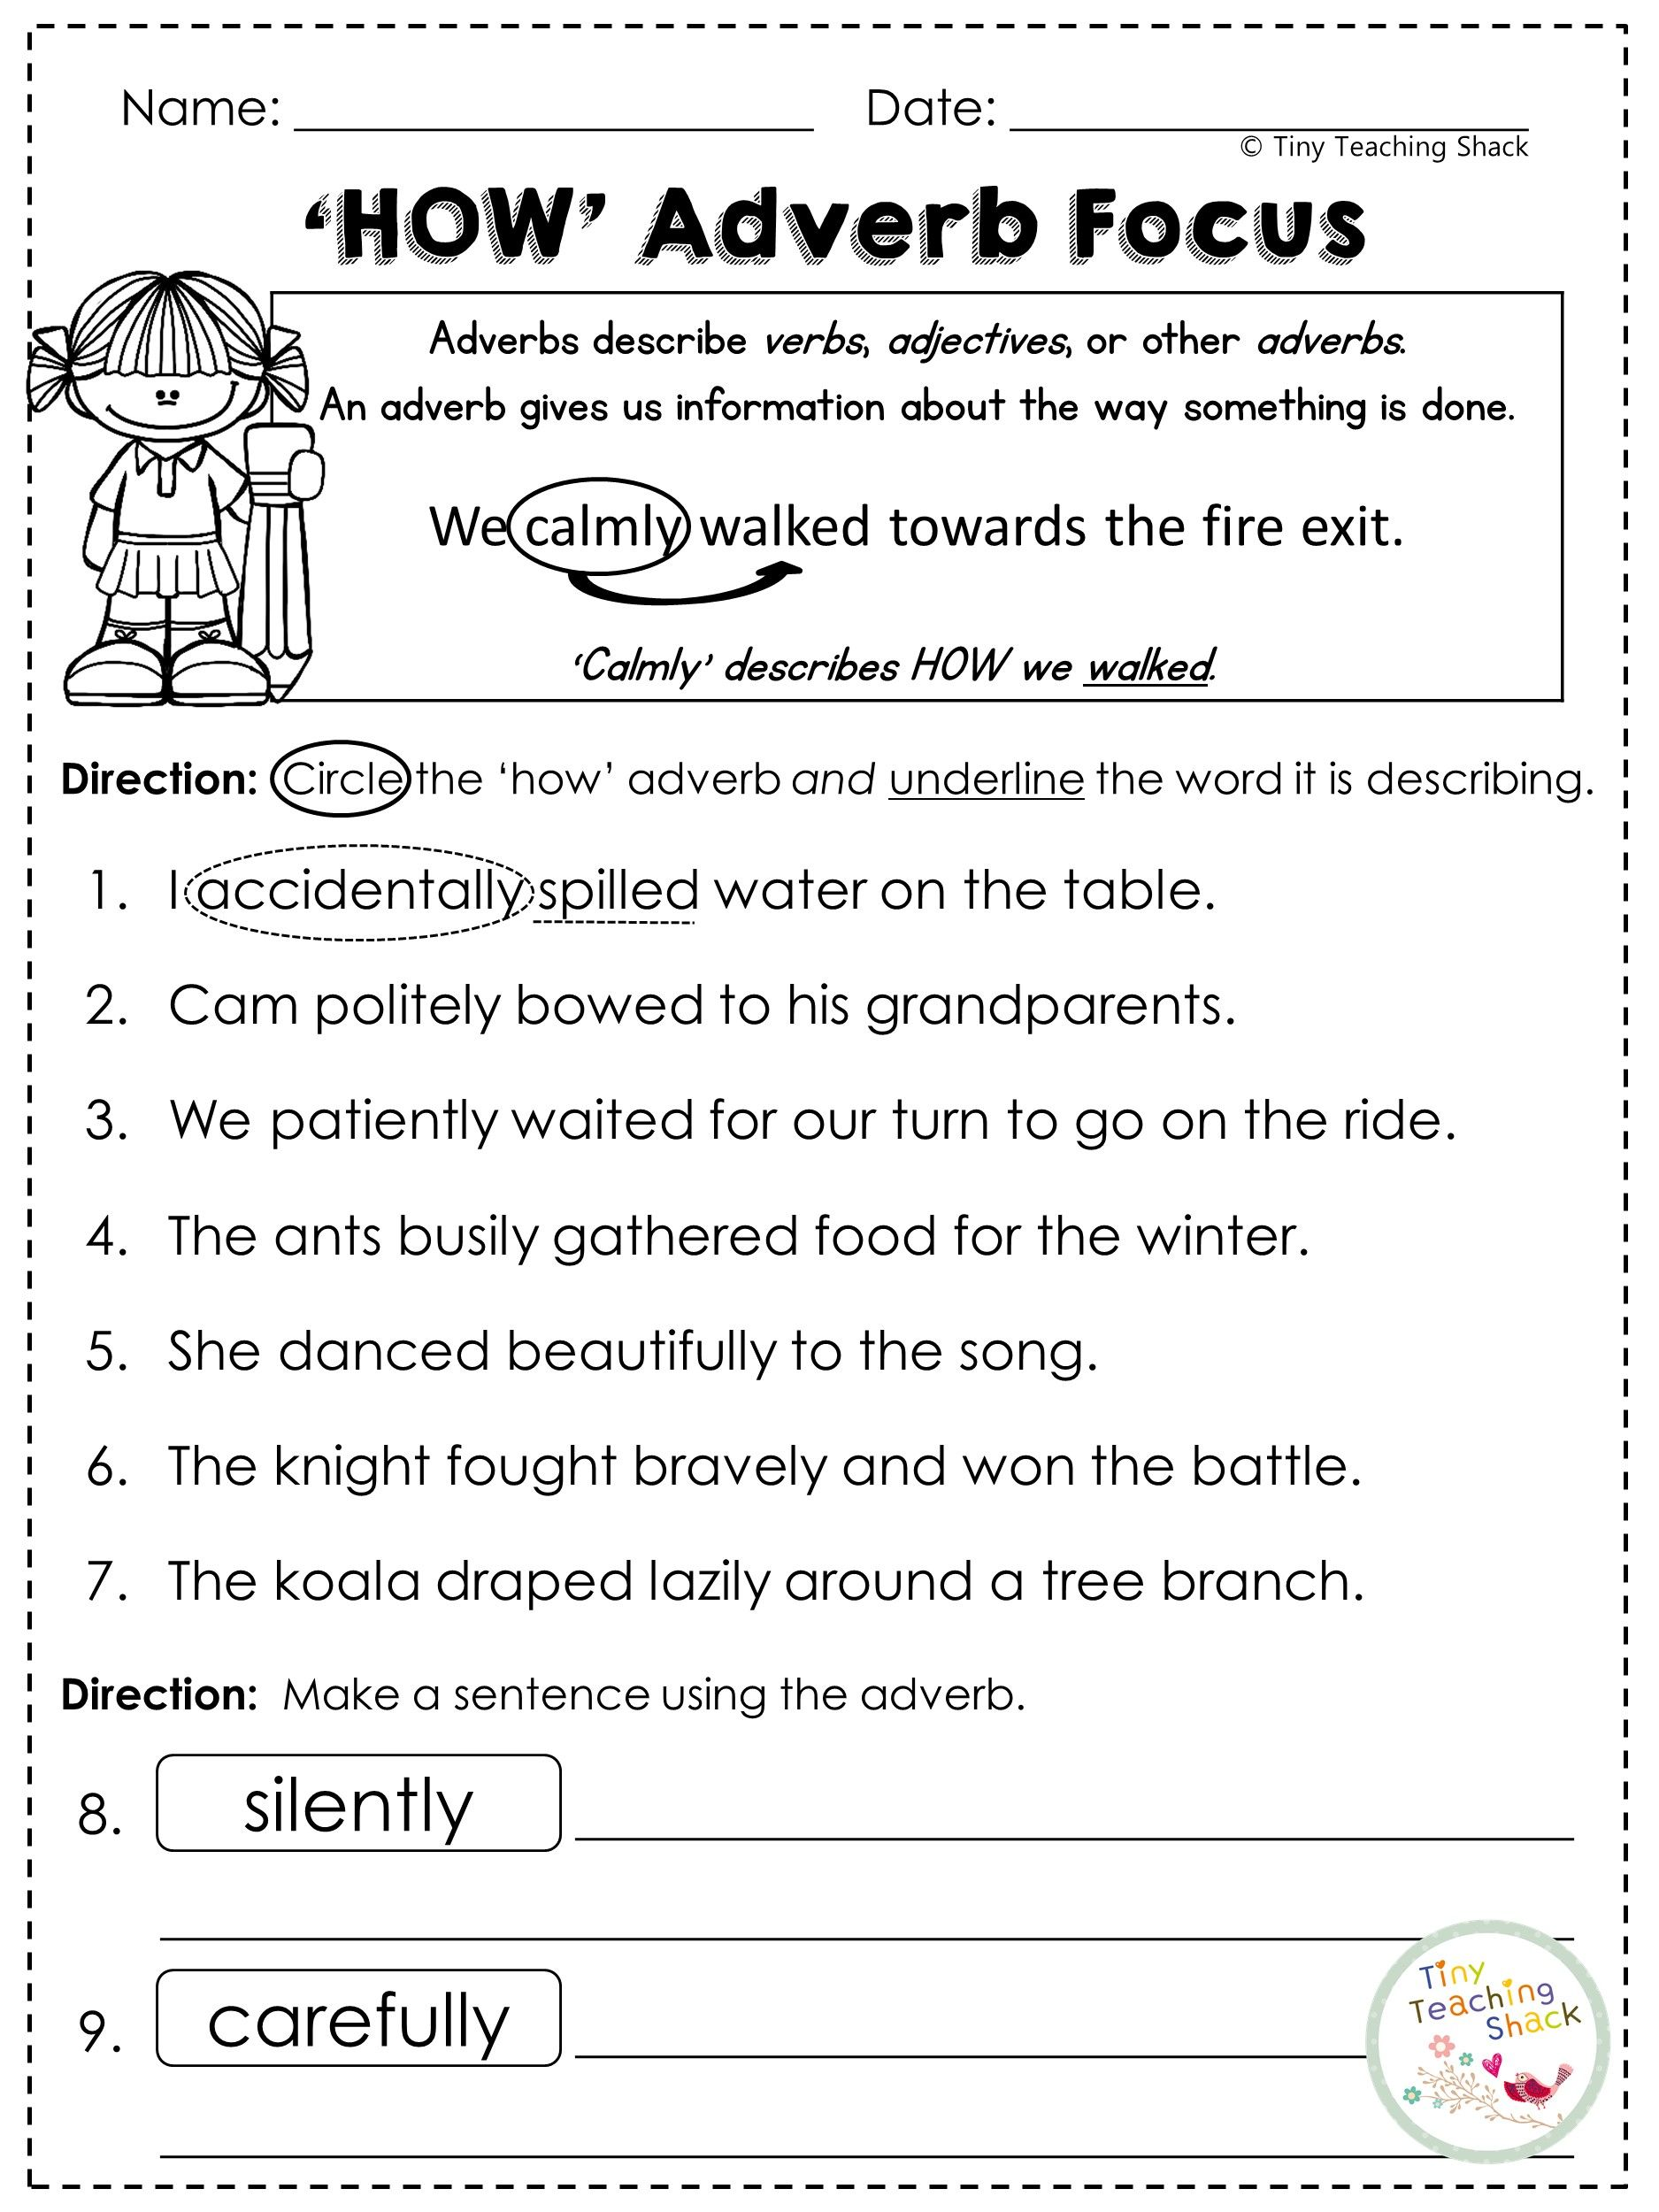 Free Adverbs Worksheet That Focuses On How Adverbs